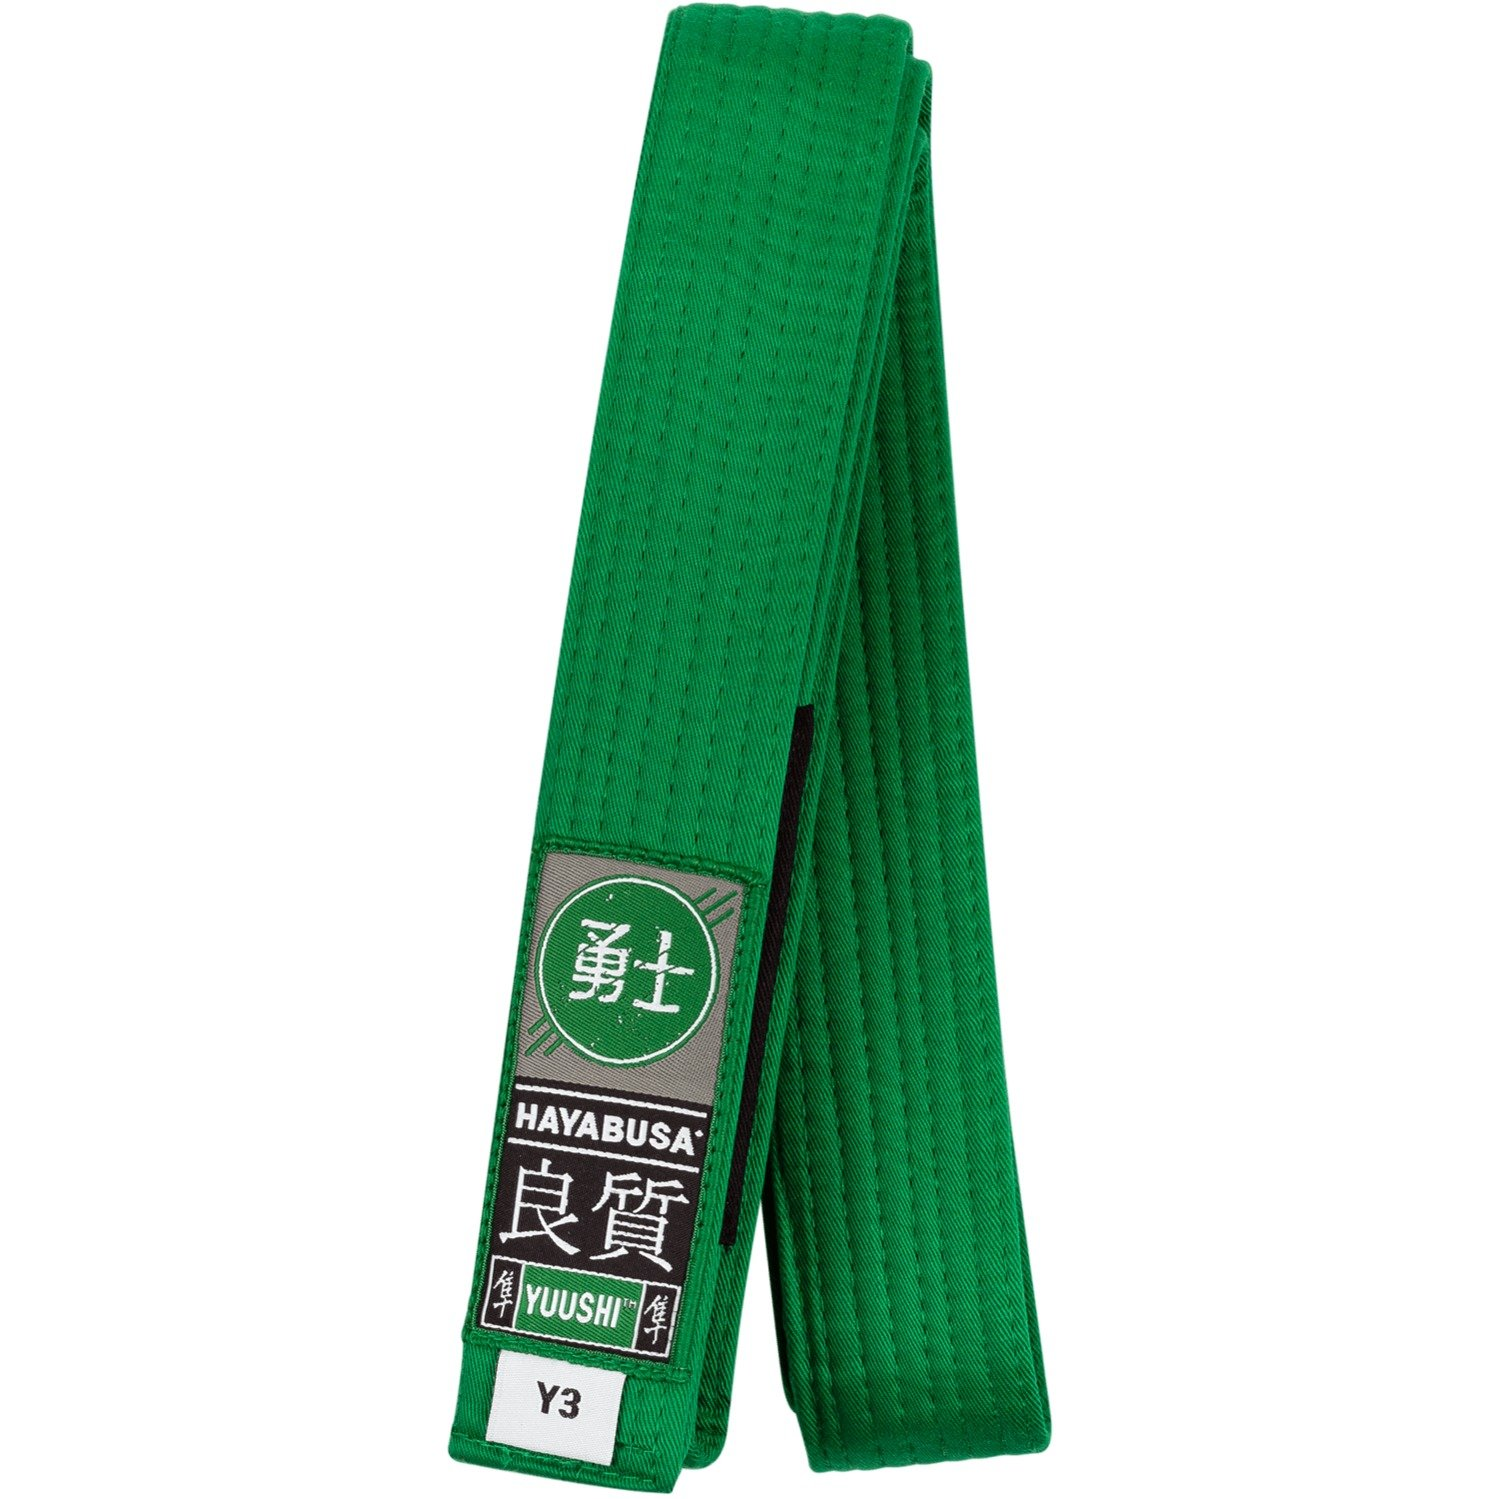 Hayabusa Cotton Youth Jiu Jitsu Belt, Green, Y0 by Hayabusa